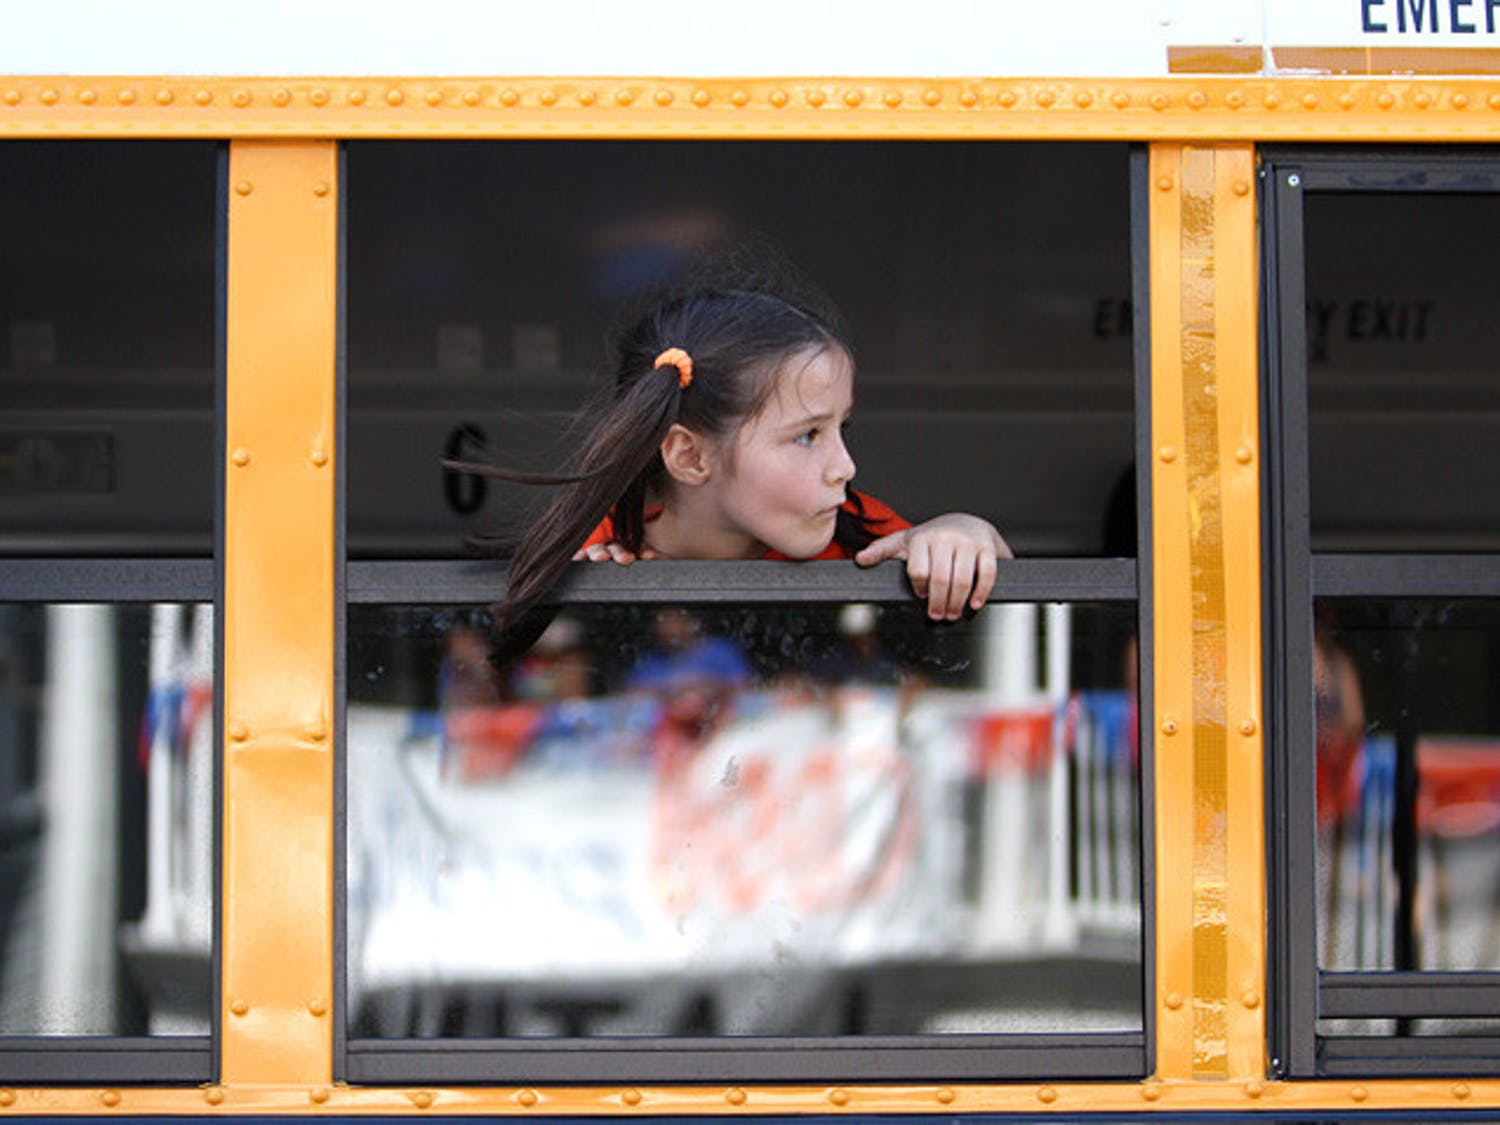 A girl stares out the window of an Alachua County school bus on West University Avenue.